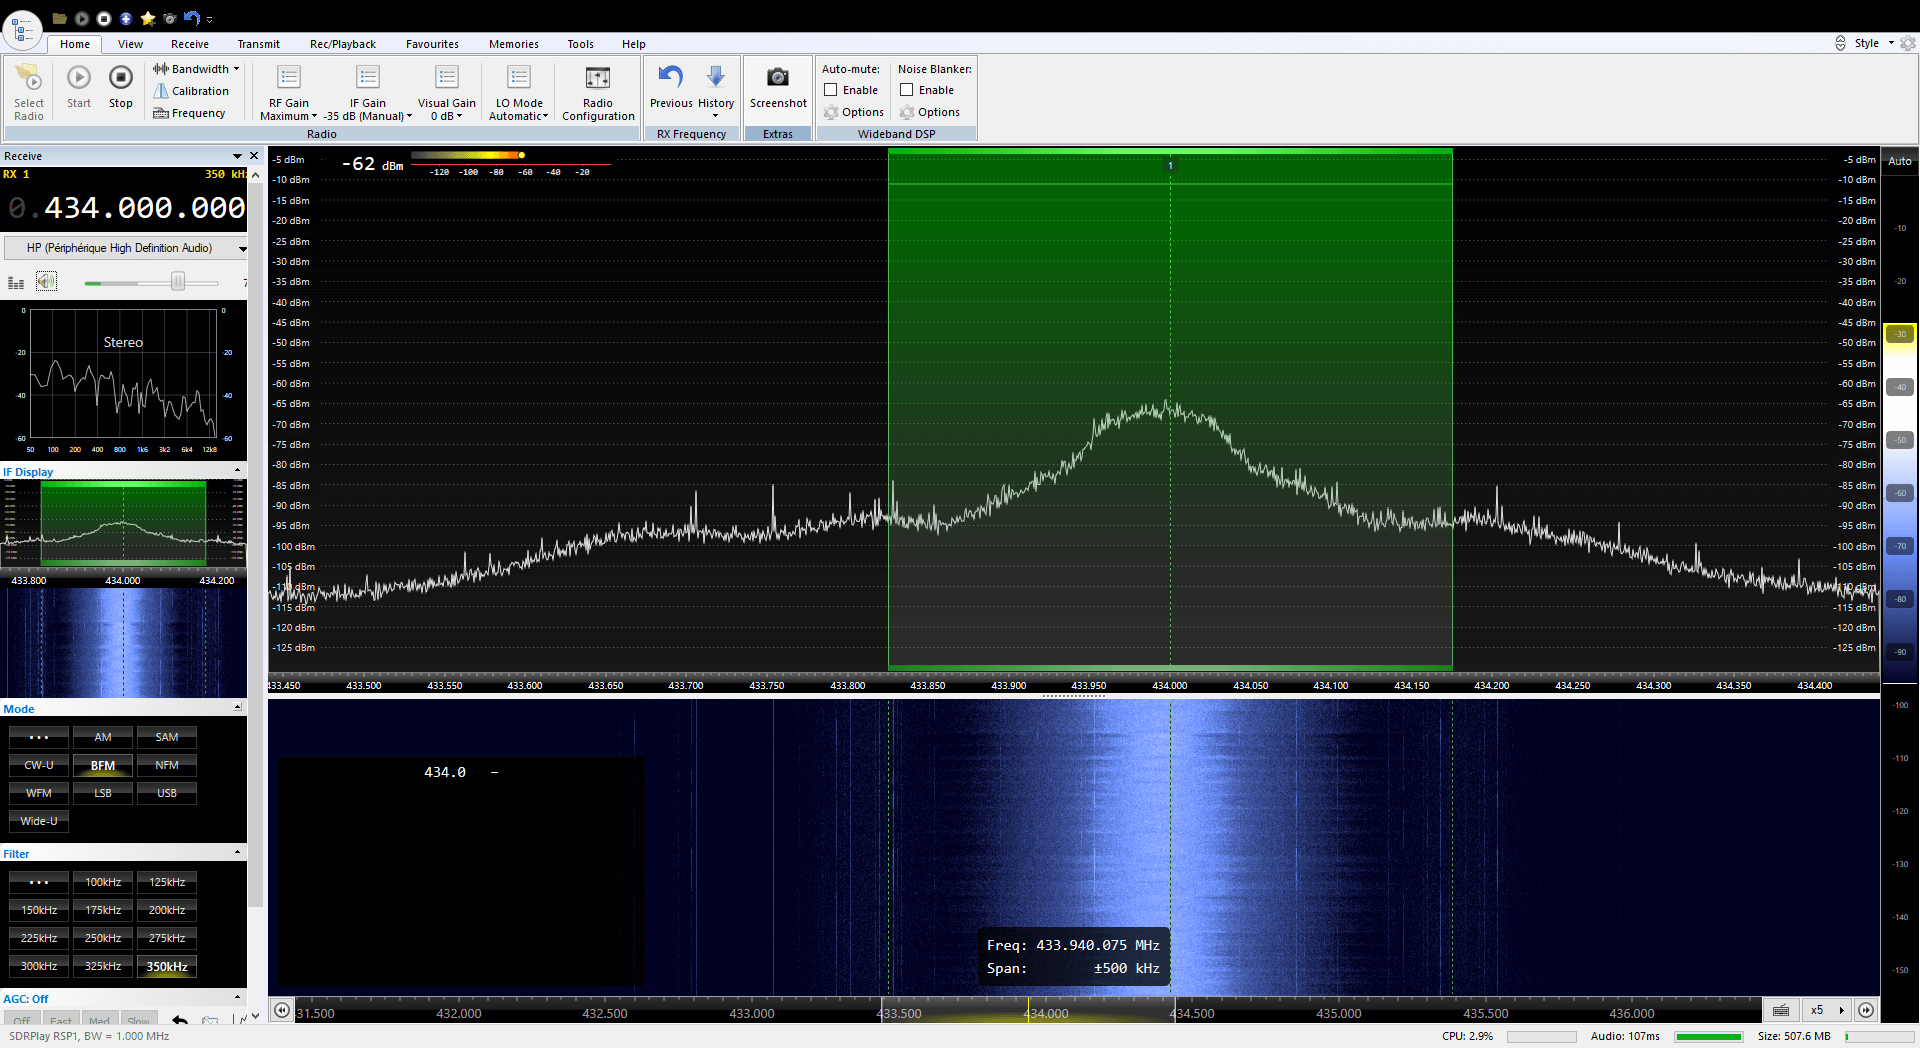 RPiTX v2 re-transmitting a broadcast FM signal live at 434 MHz.